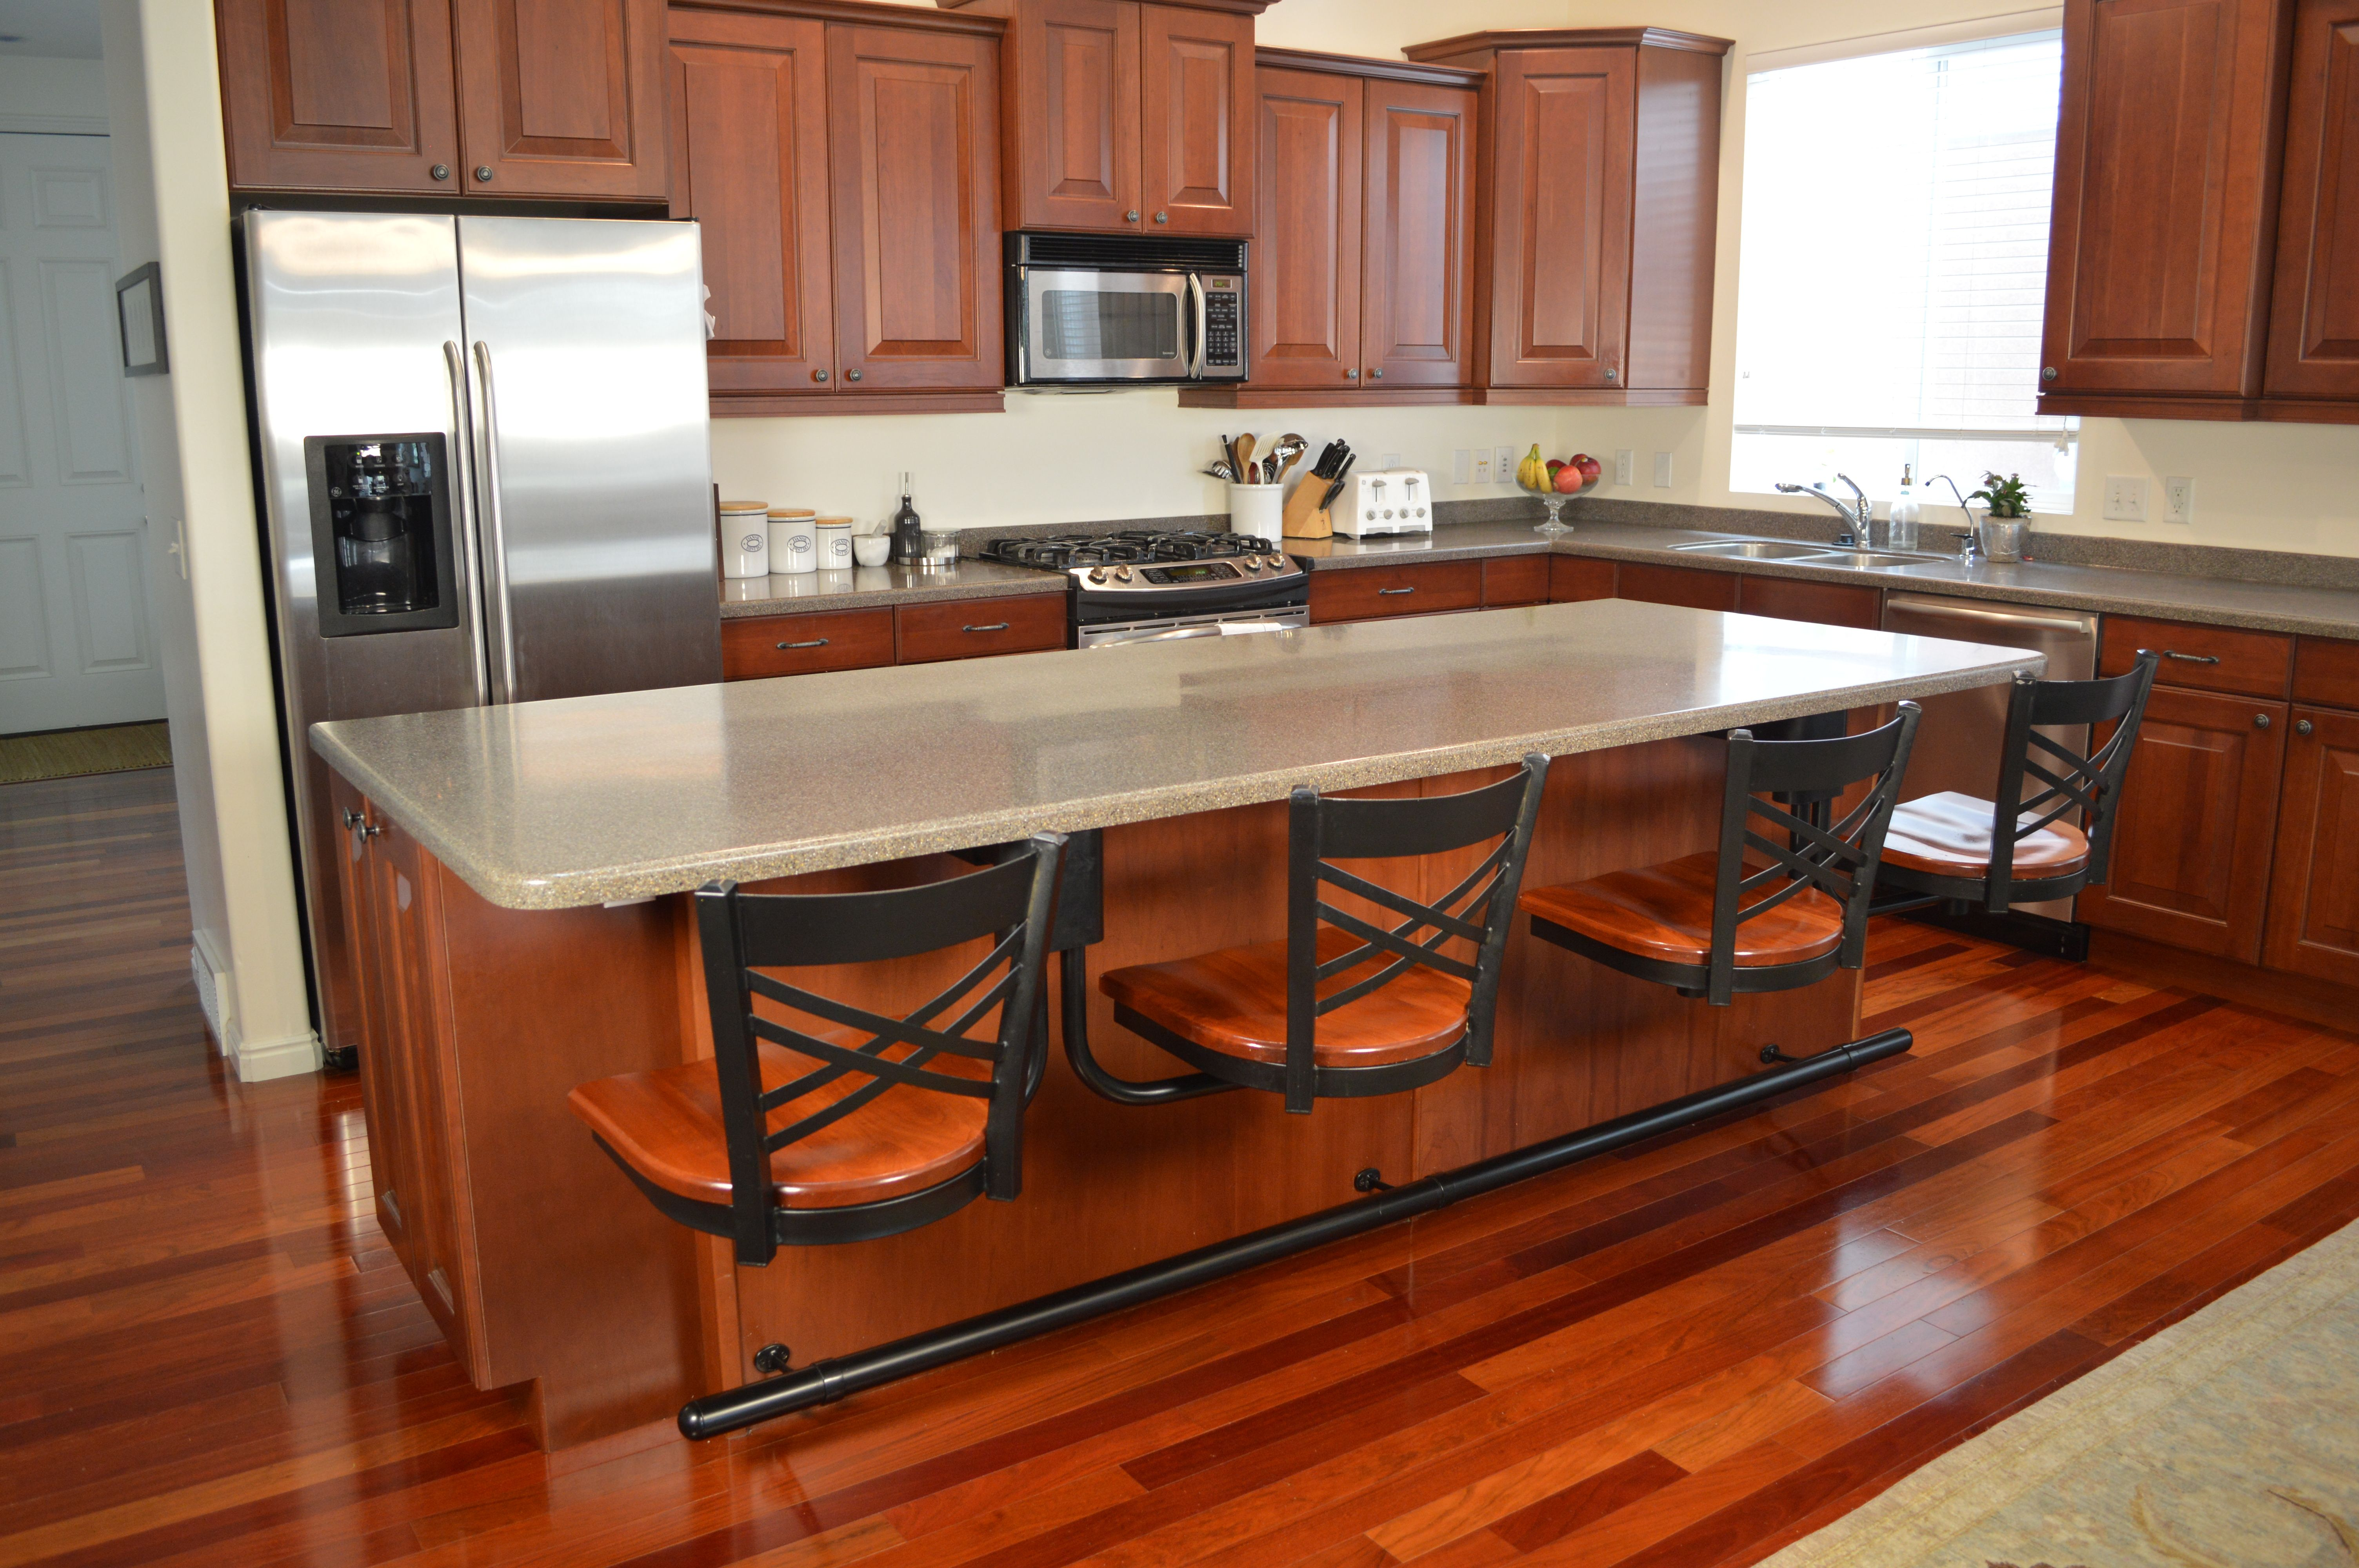 Kitchen Island Bar With Seating Bar Seating Bar Stools Chairs Dining Room Seating